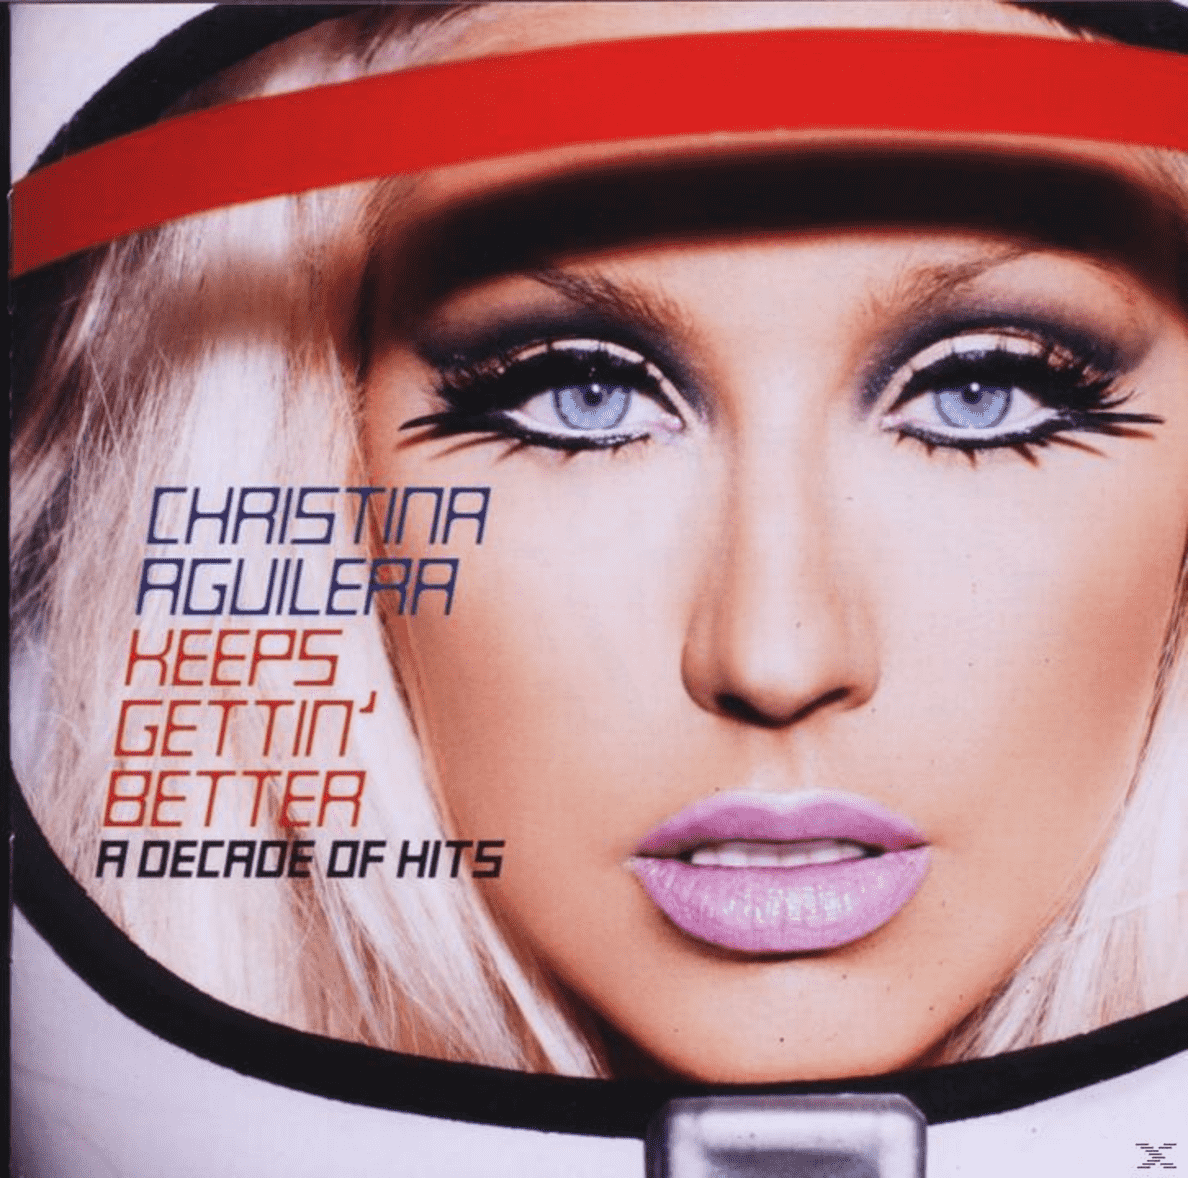 Keeps Gettin´ Better - A Decade Of Hits Christina Aguilera auf CD